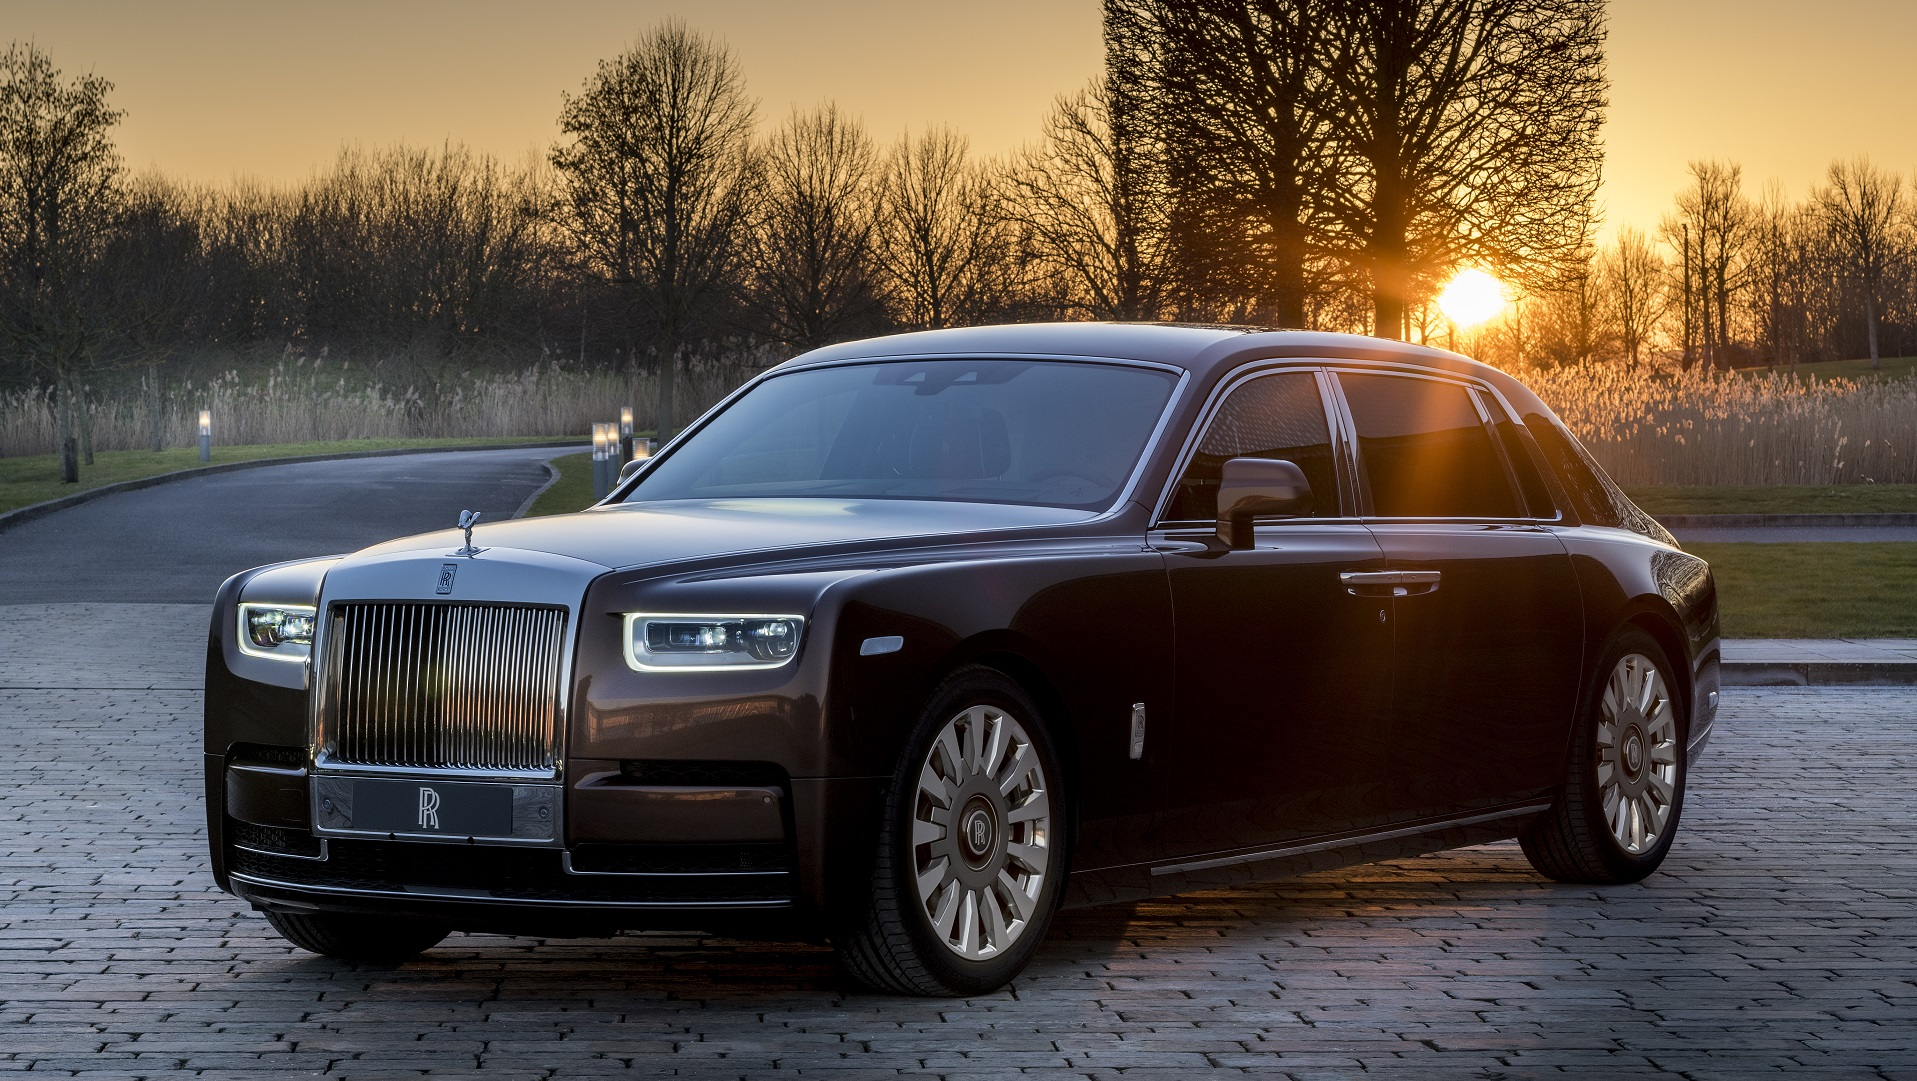 China Is Now the Largest Market in the World for the Rolls-Royce Phantom